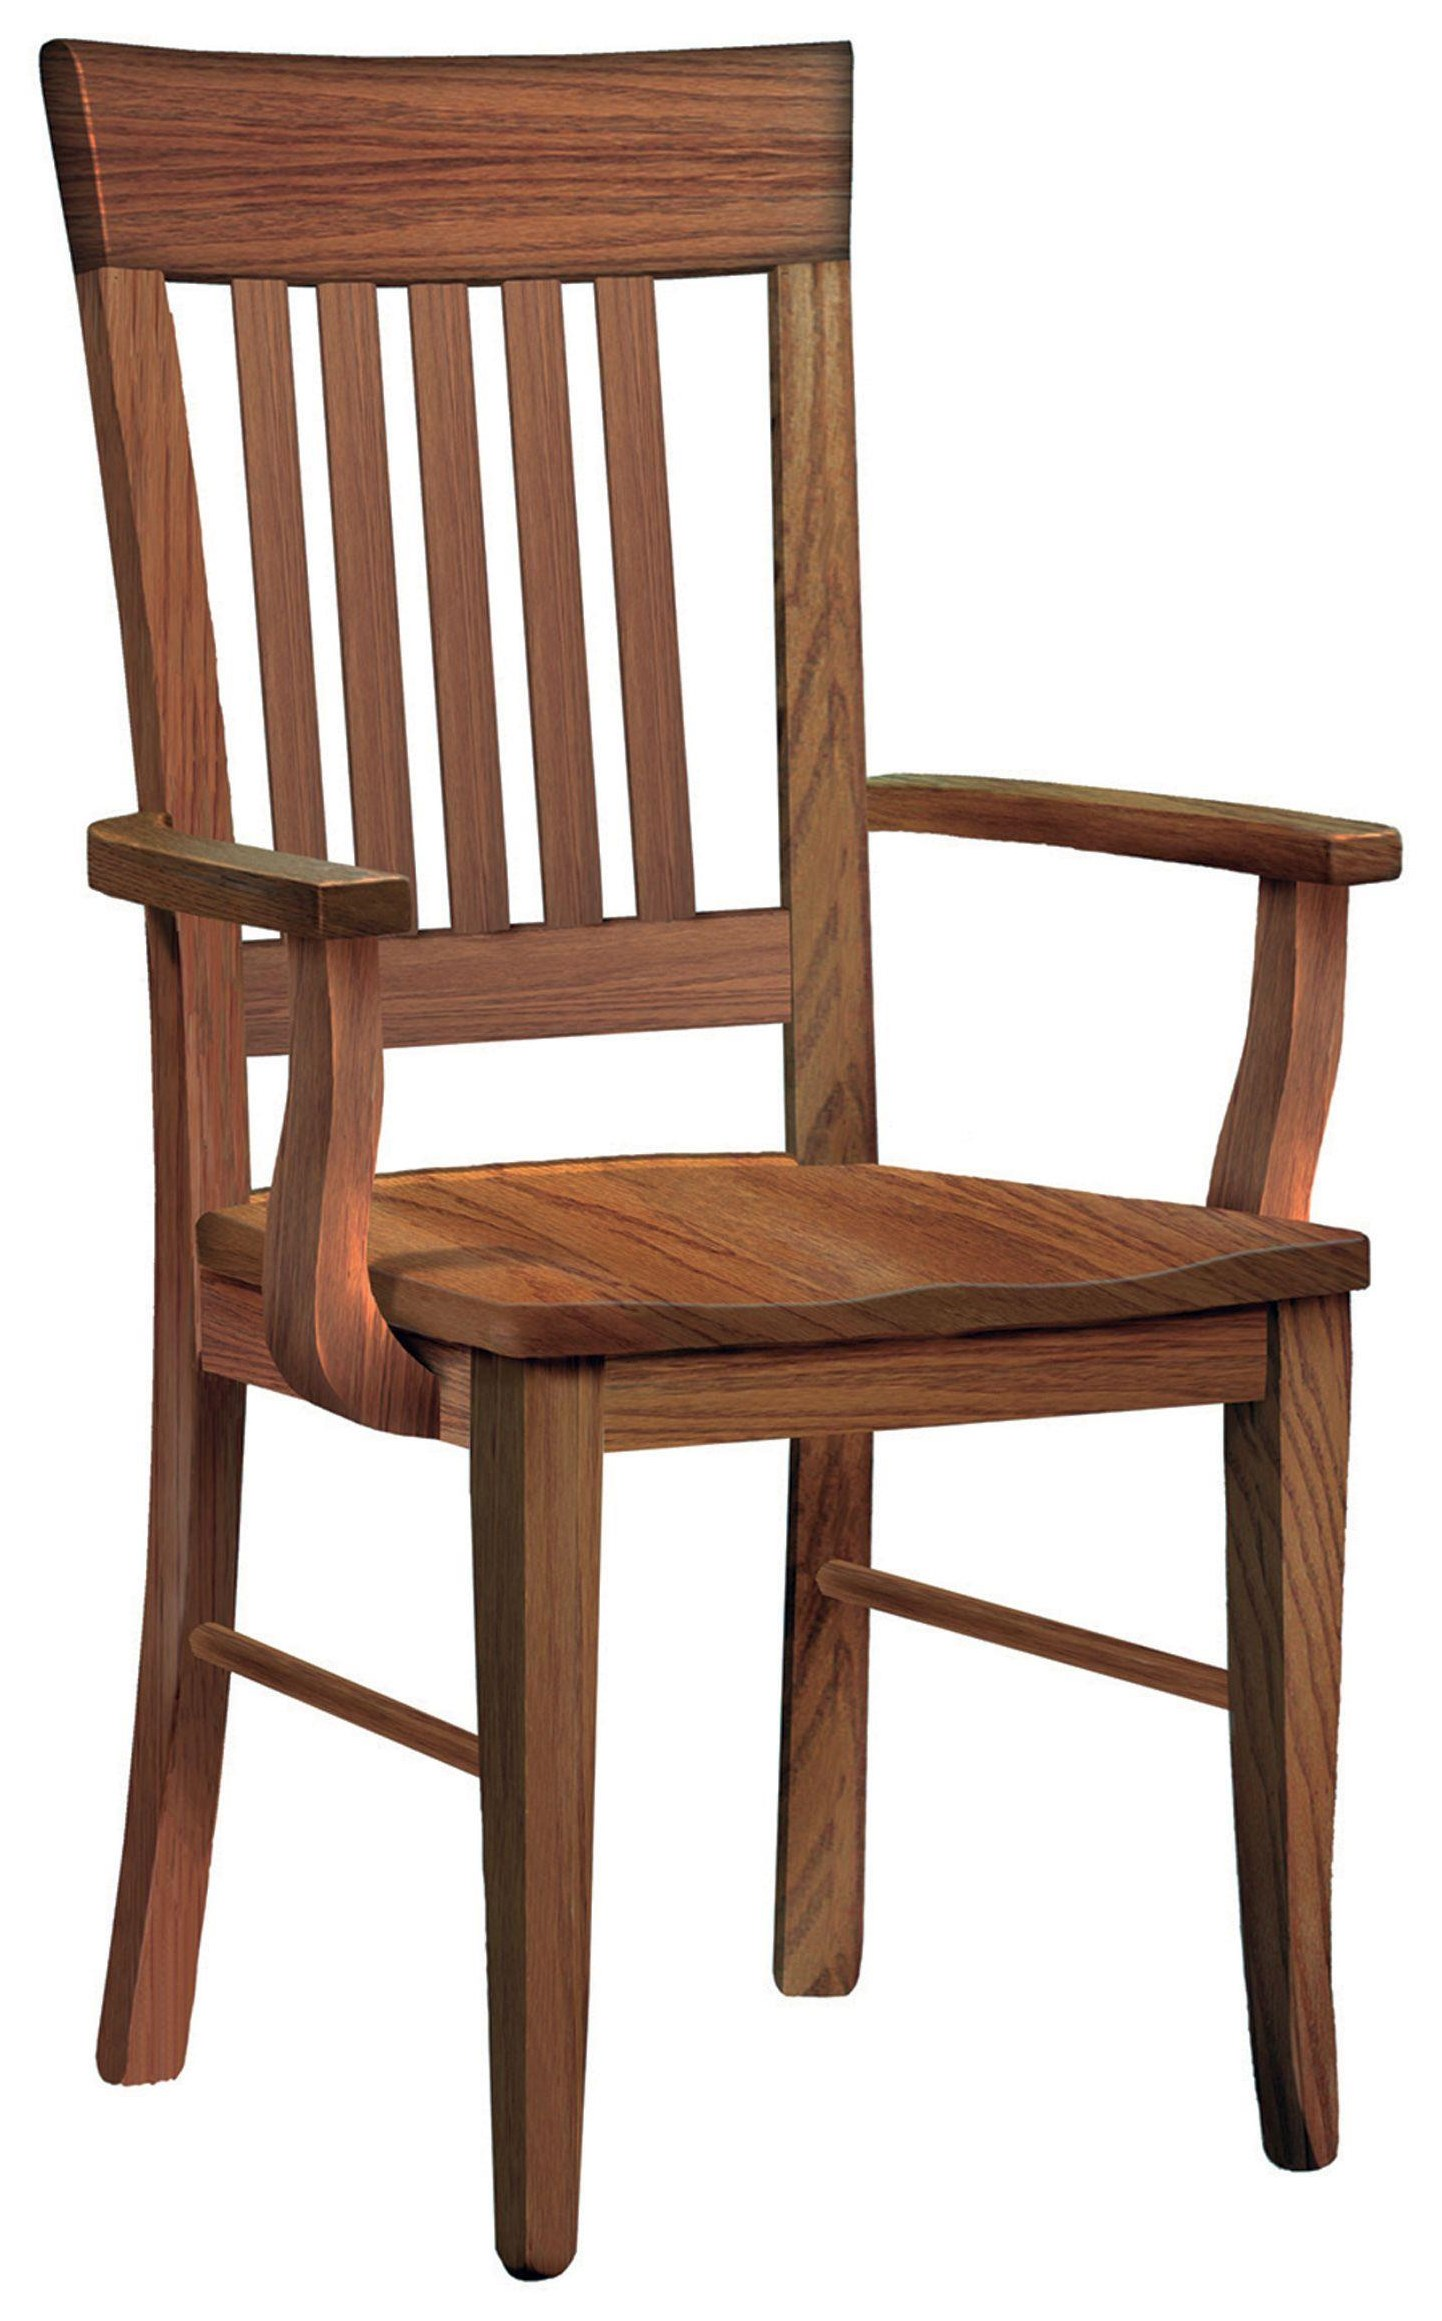 Ottawa Arm Chair by Wengerd Wood Products at Wayside Furniture